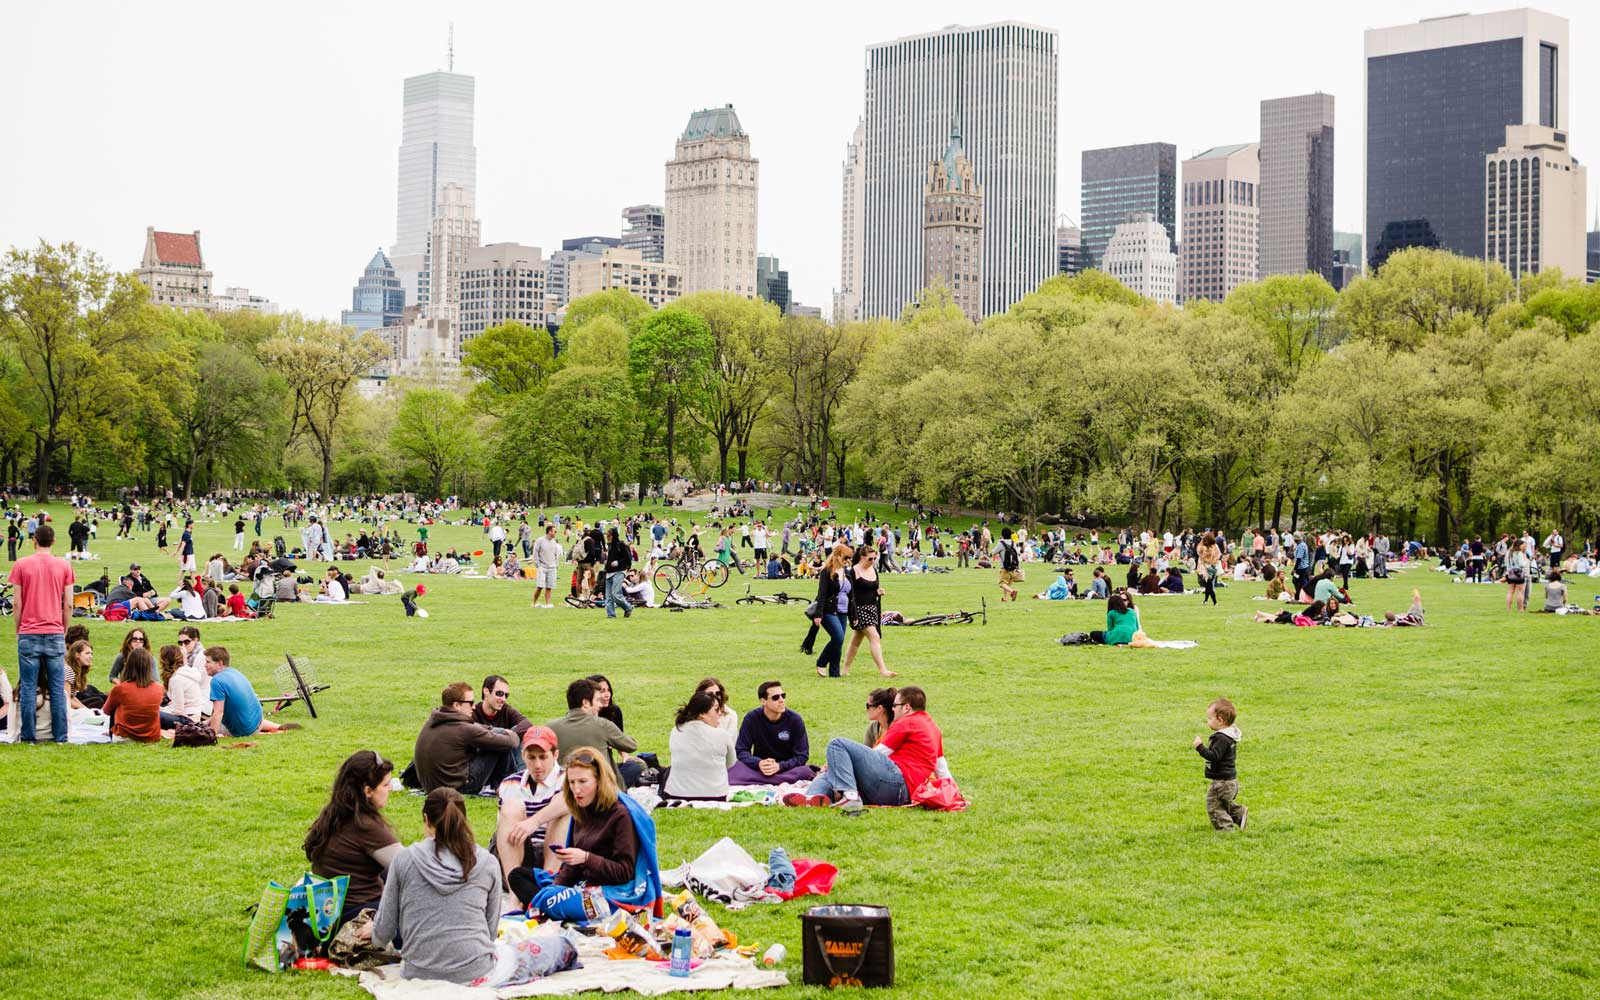 People having picnics in Central Park, New York City